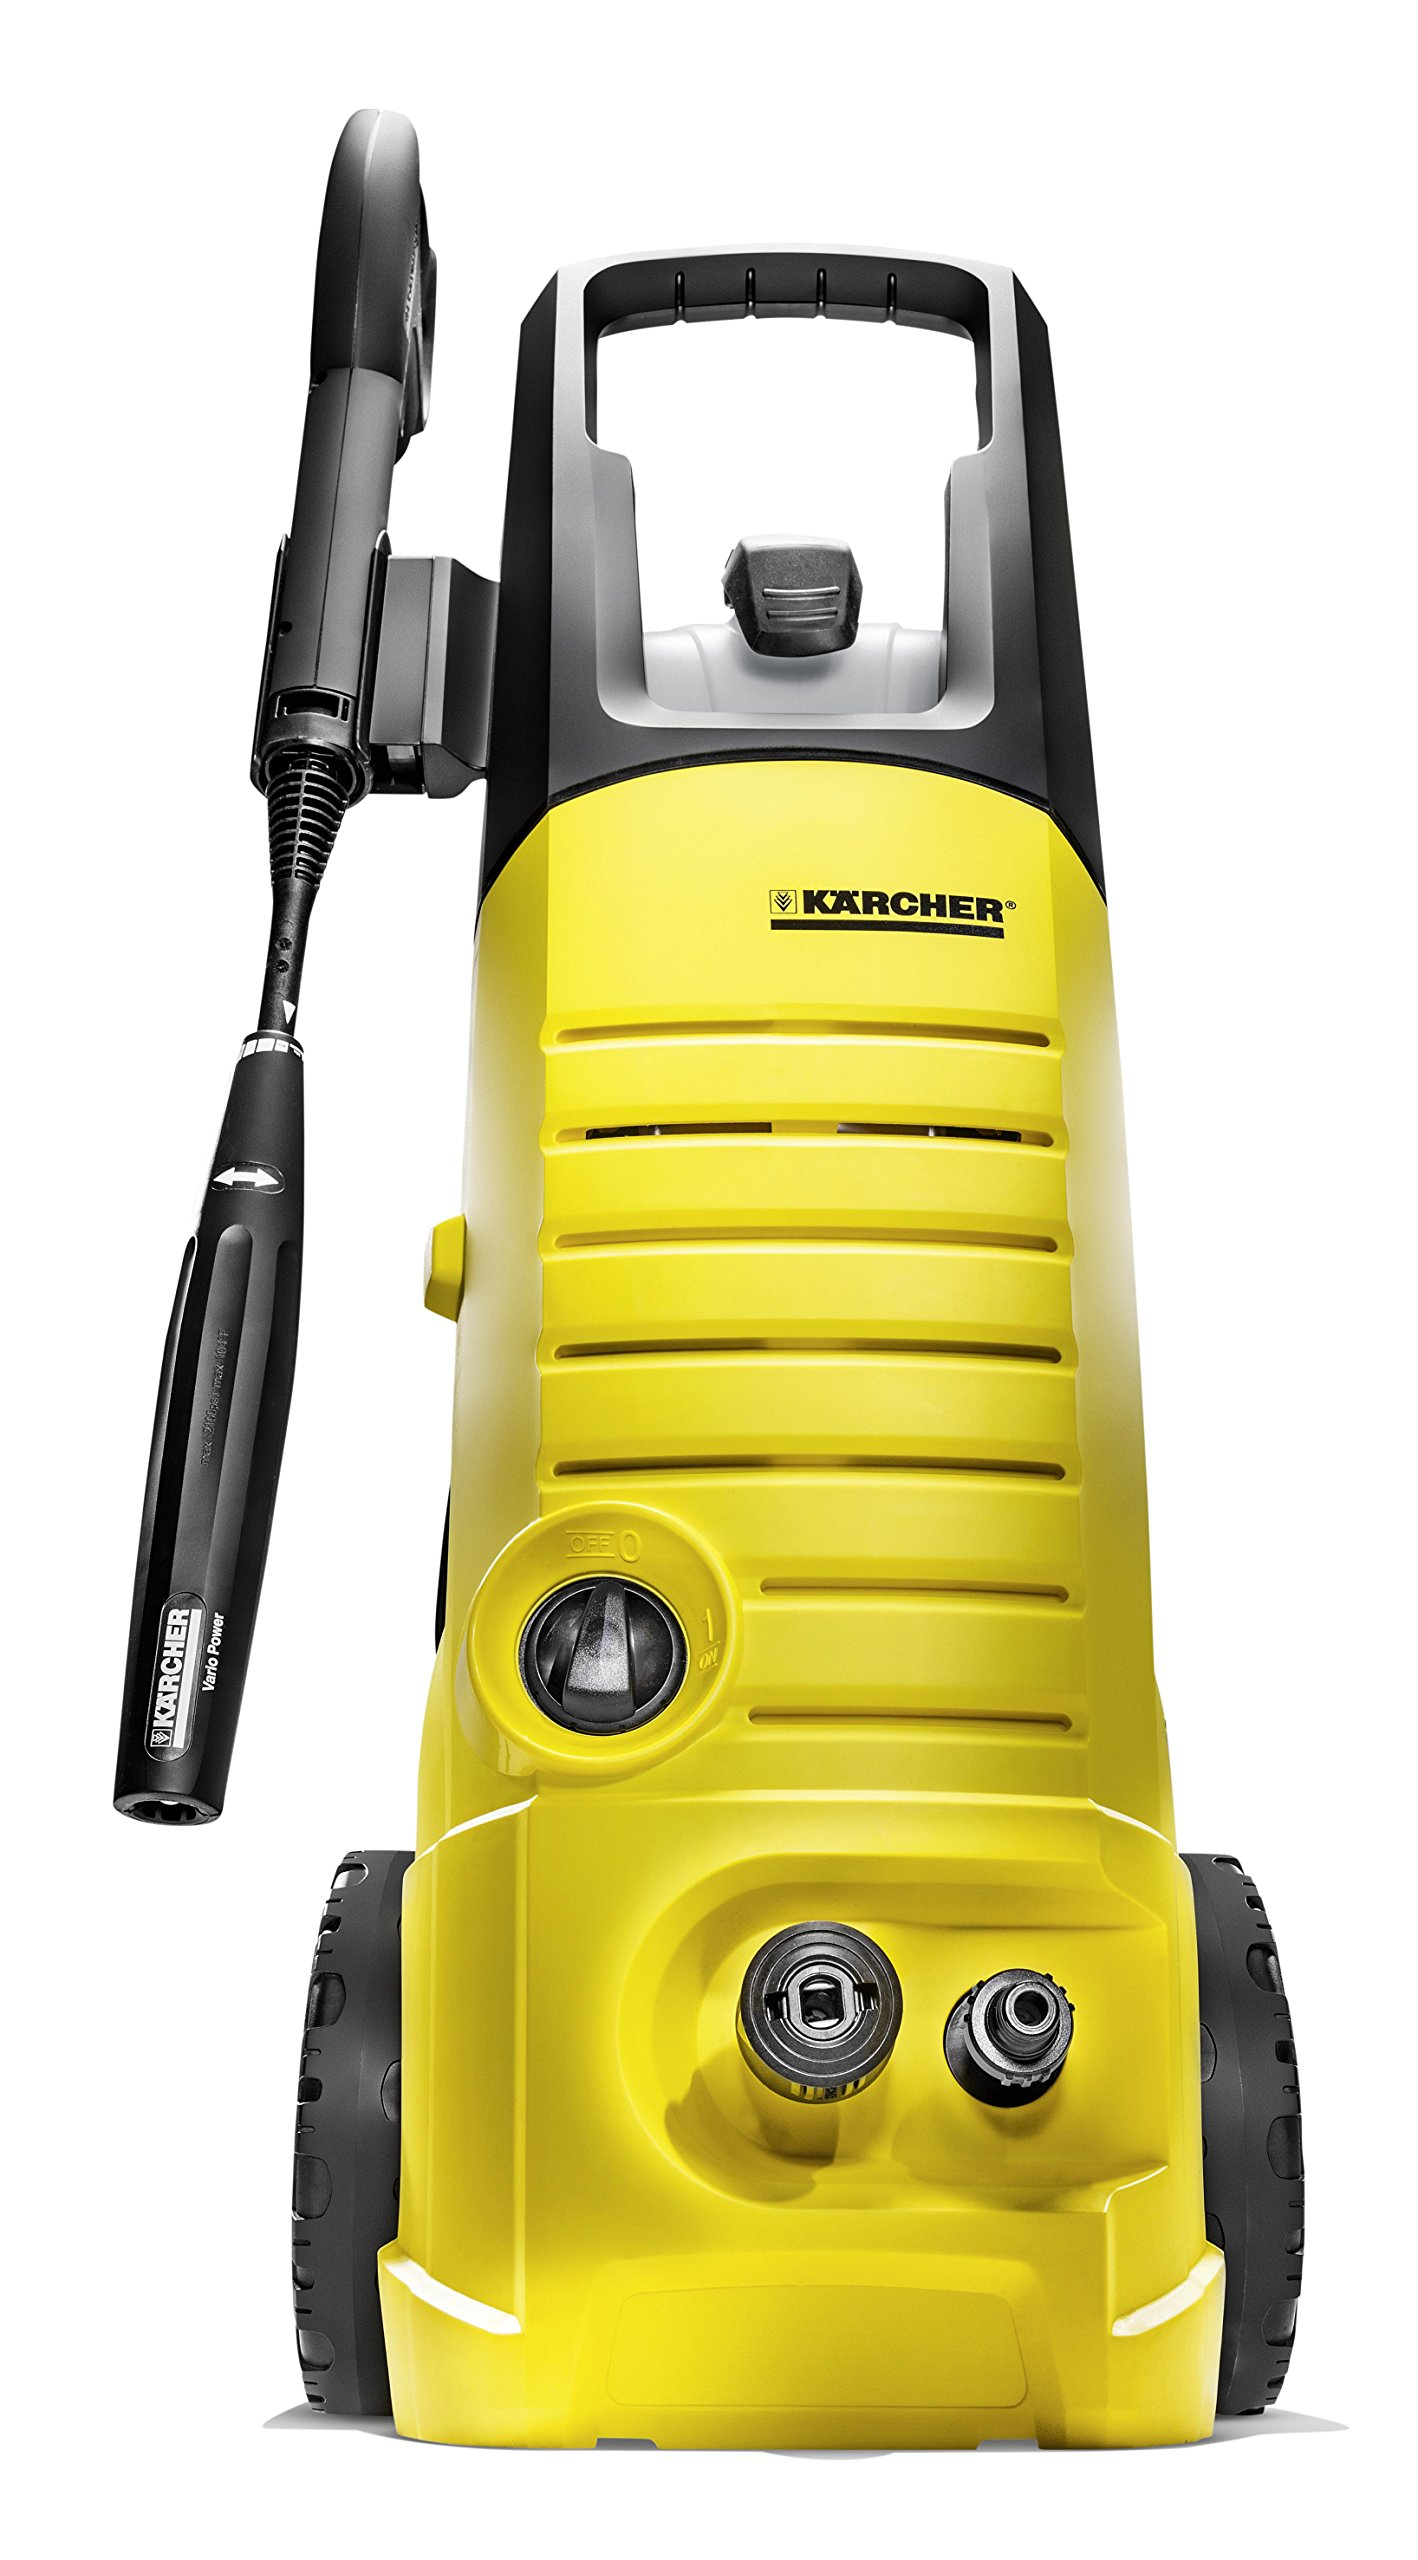 Karcher K3 Electric Power Pressure Washer, 1800 PSI, 1.5 GPM